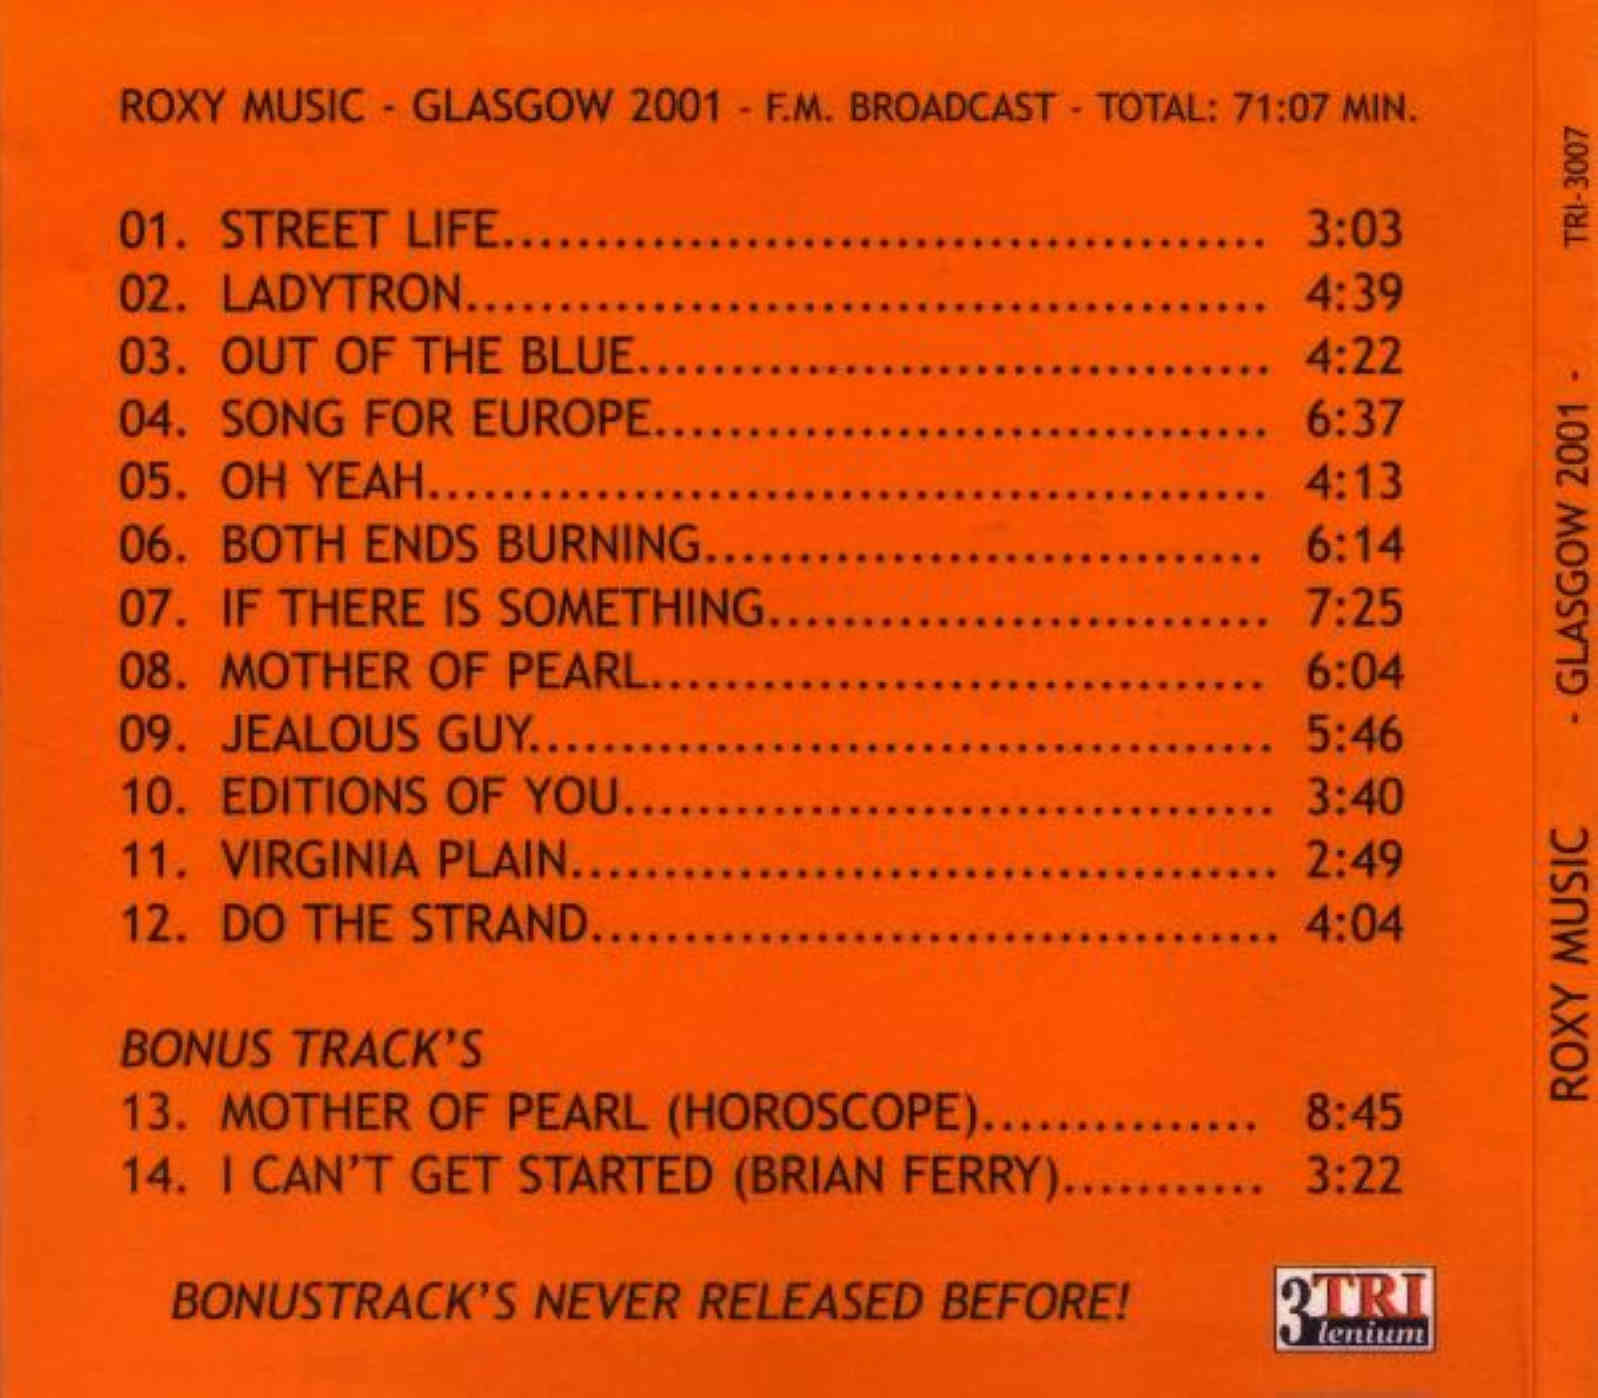 2019 St Dj Songs Dowode 4 33 Mb: Roxy Music: Glasgow 2001. BBC Radio One Broadcast, Glasgow